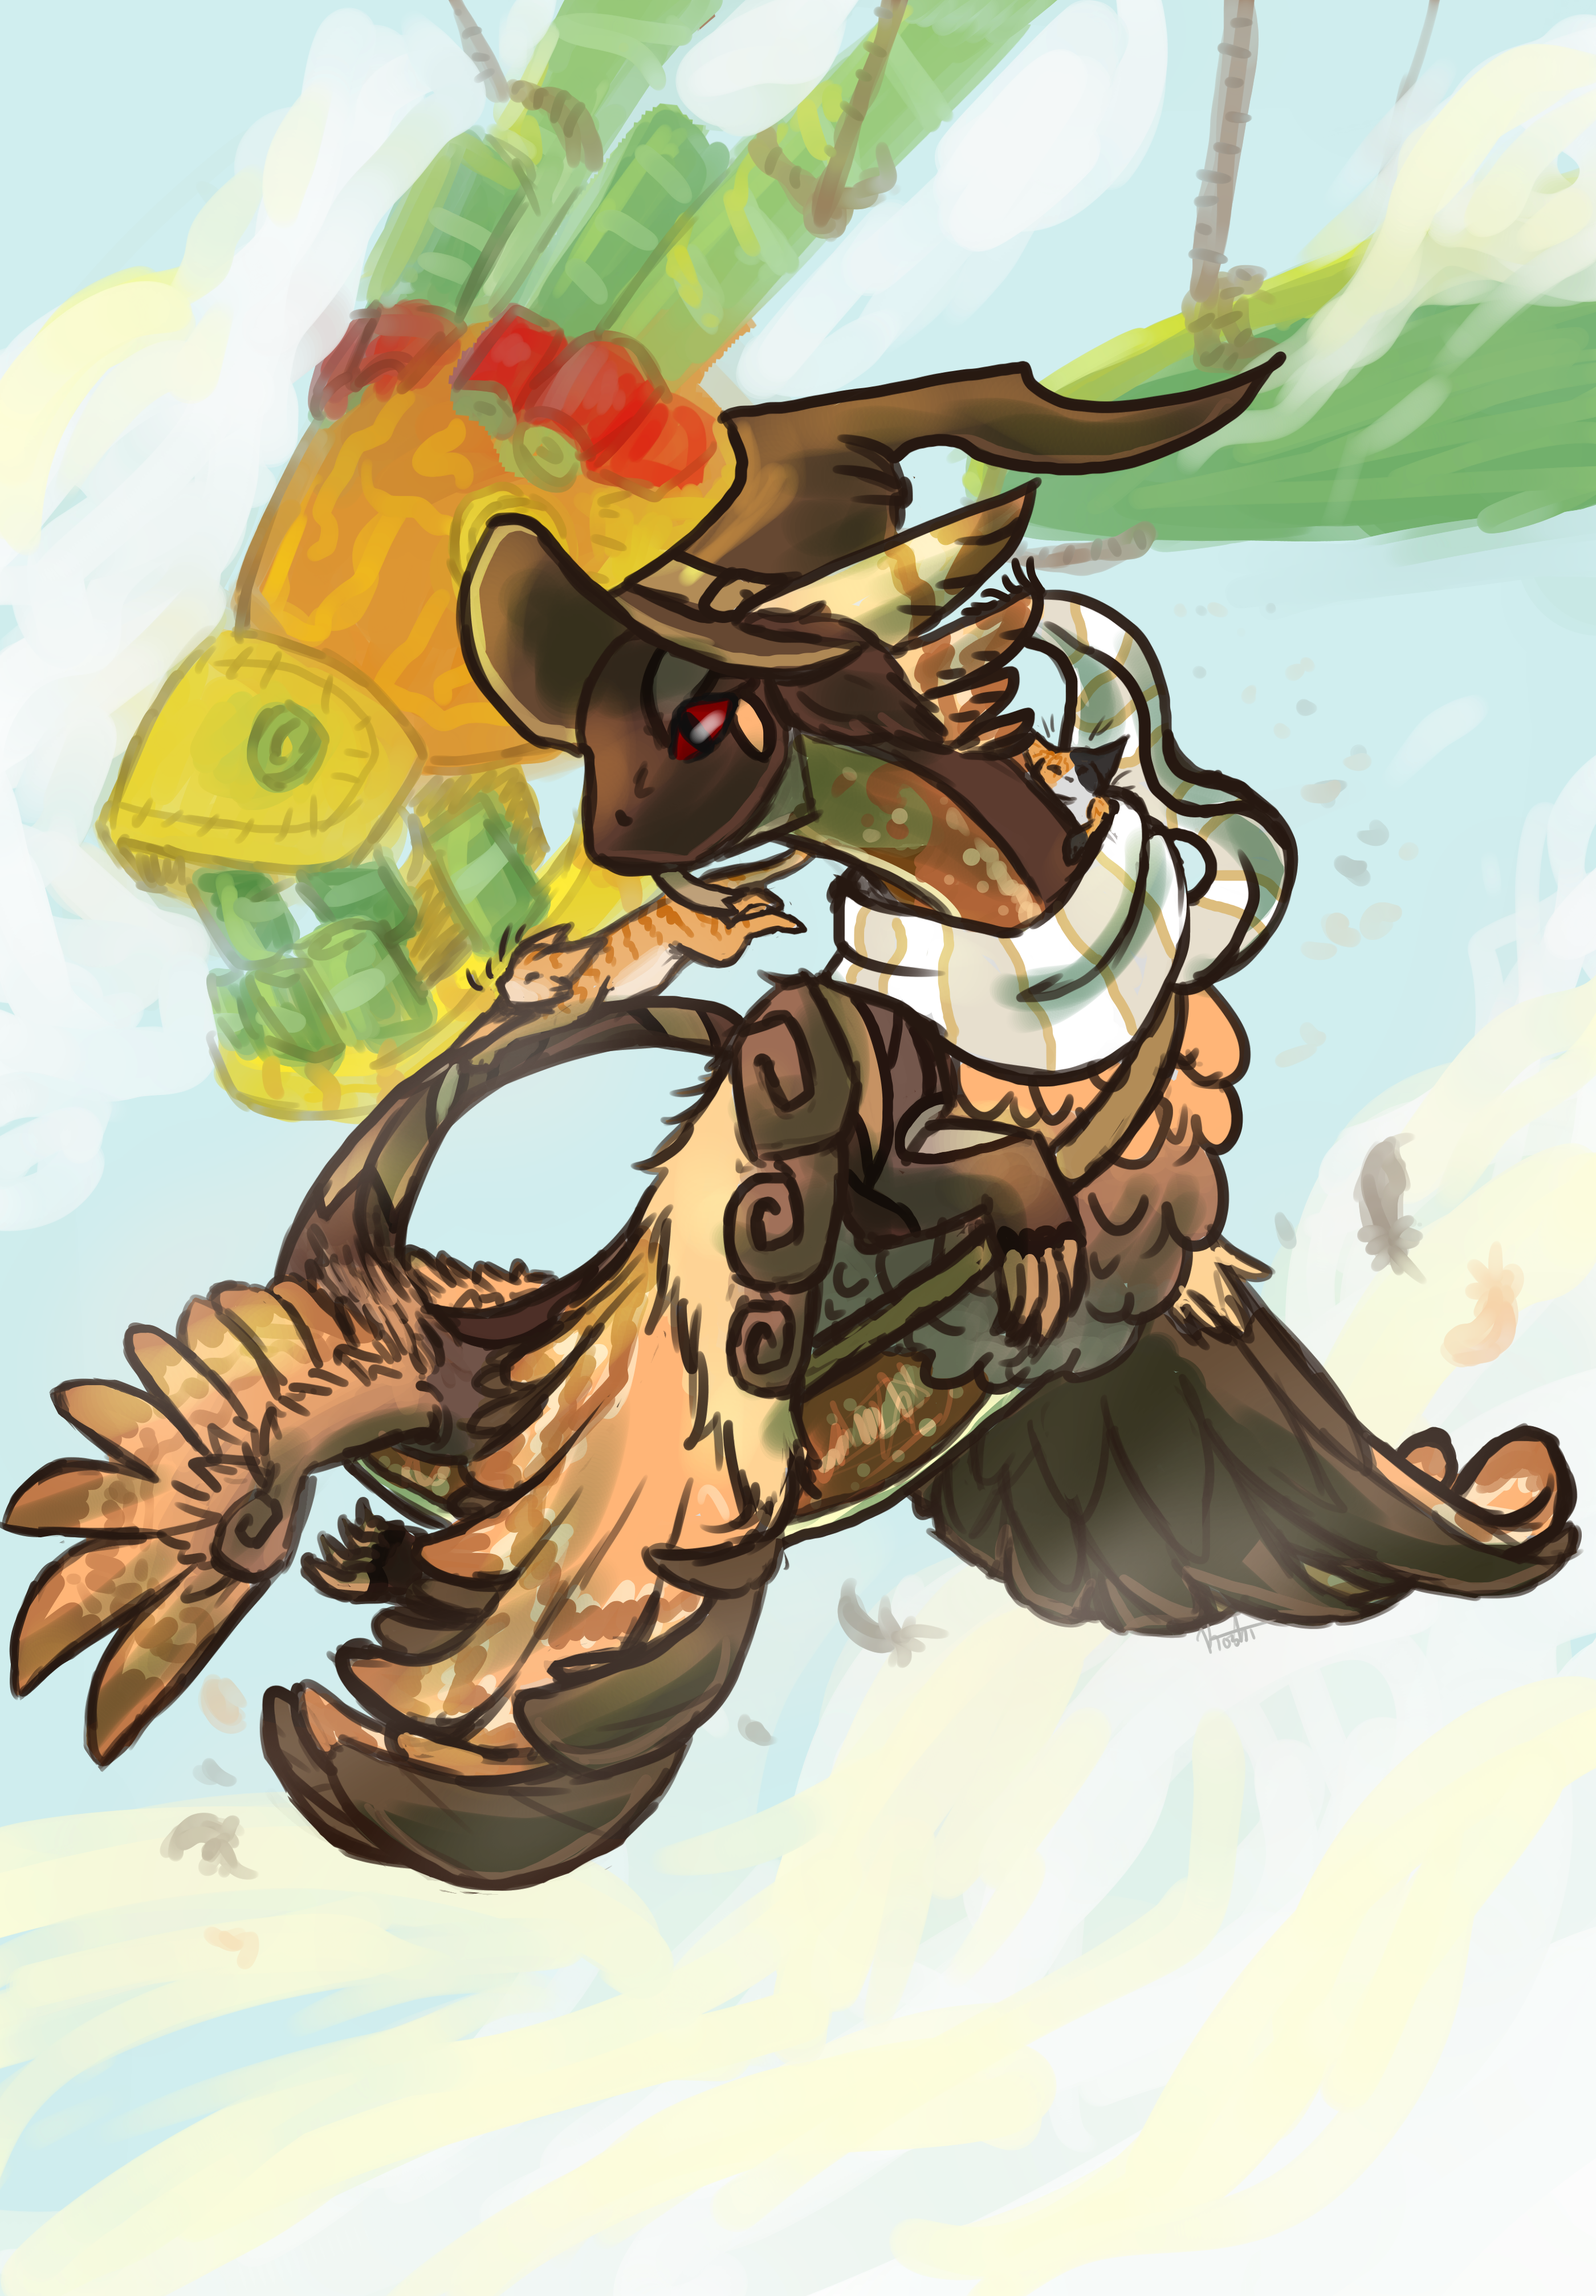 com_for_october_by_lotuscatdragon_dd9qd30.png